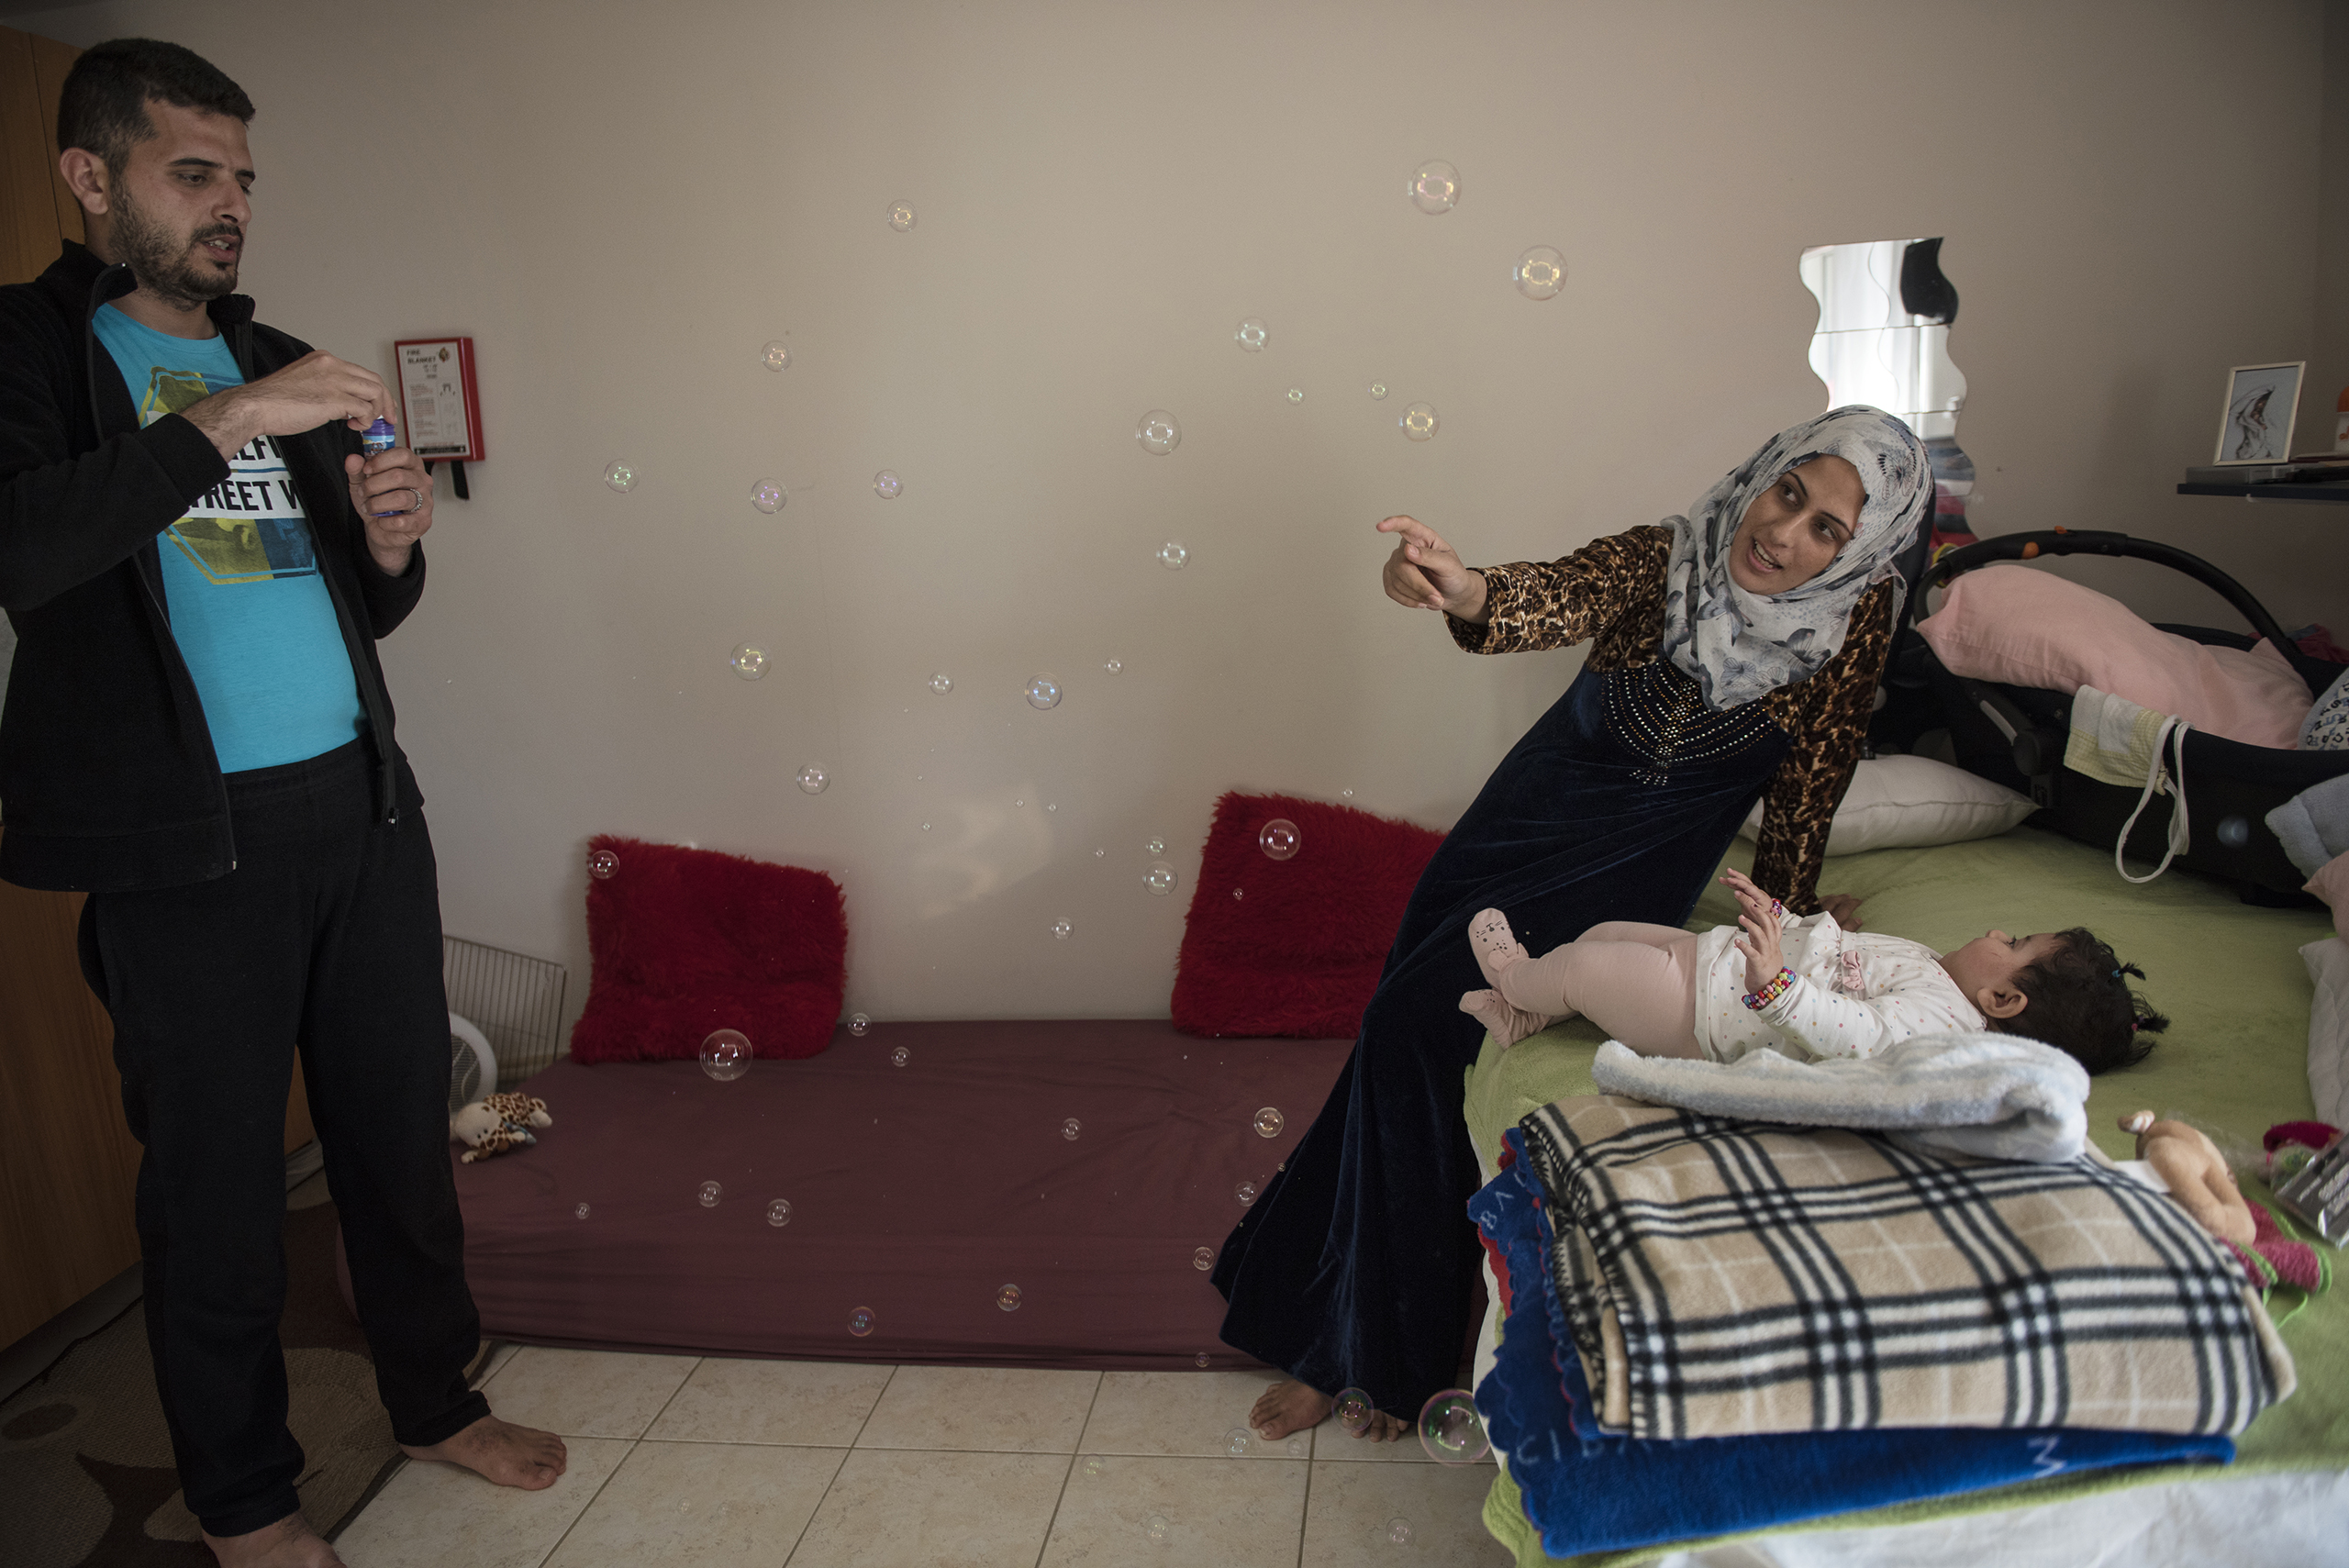 Noor Al Talaa, 22, and her husband, Yousuf Arsan, 27, entertain baby Rahaf, almost 6 months, at an apartment in Sidros, outside of Thessaloniki, Greece, March 28, 2017.